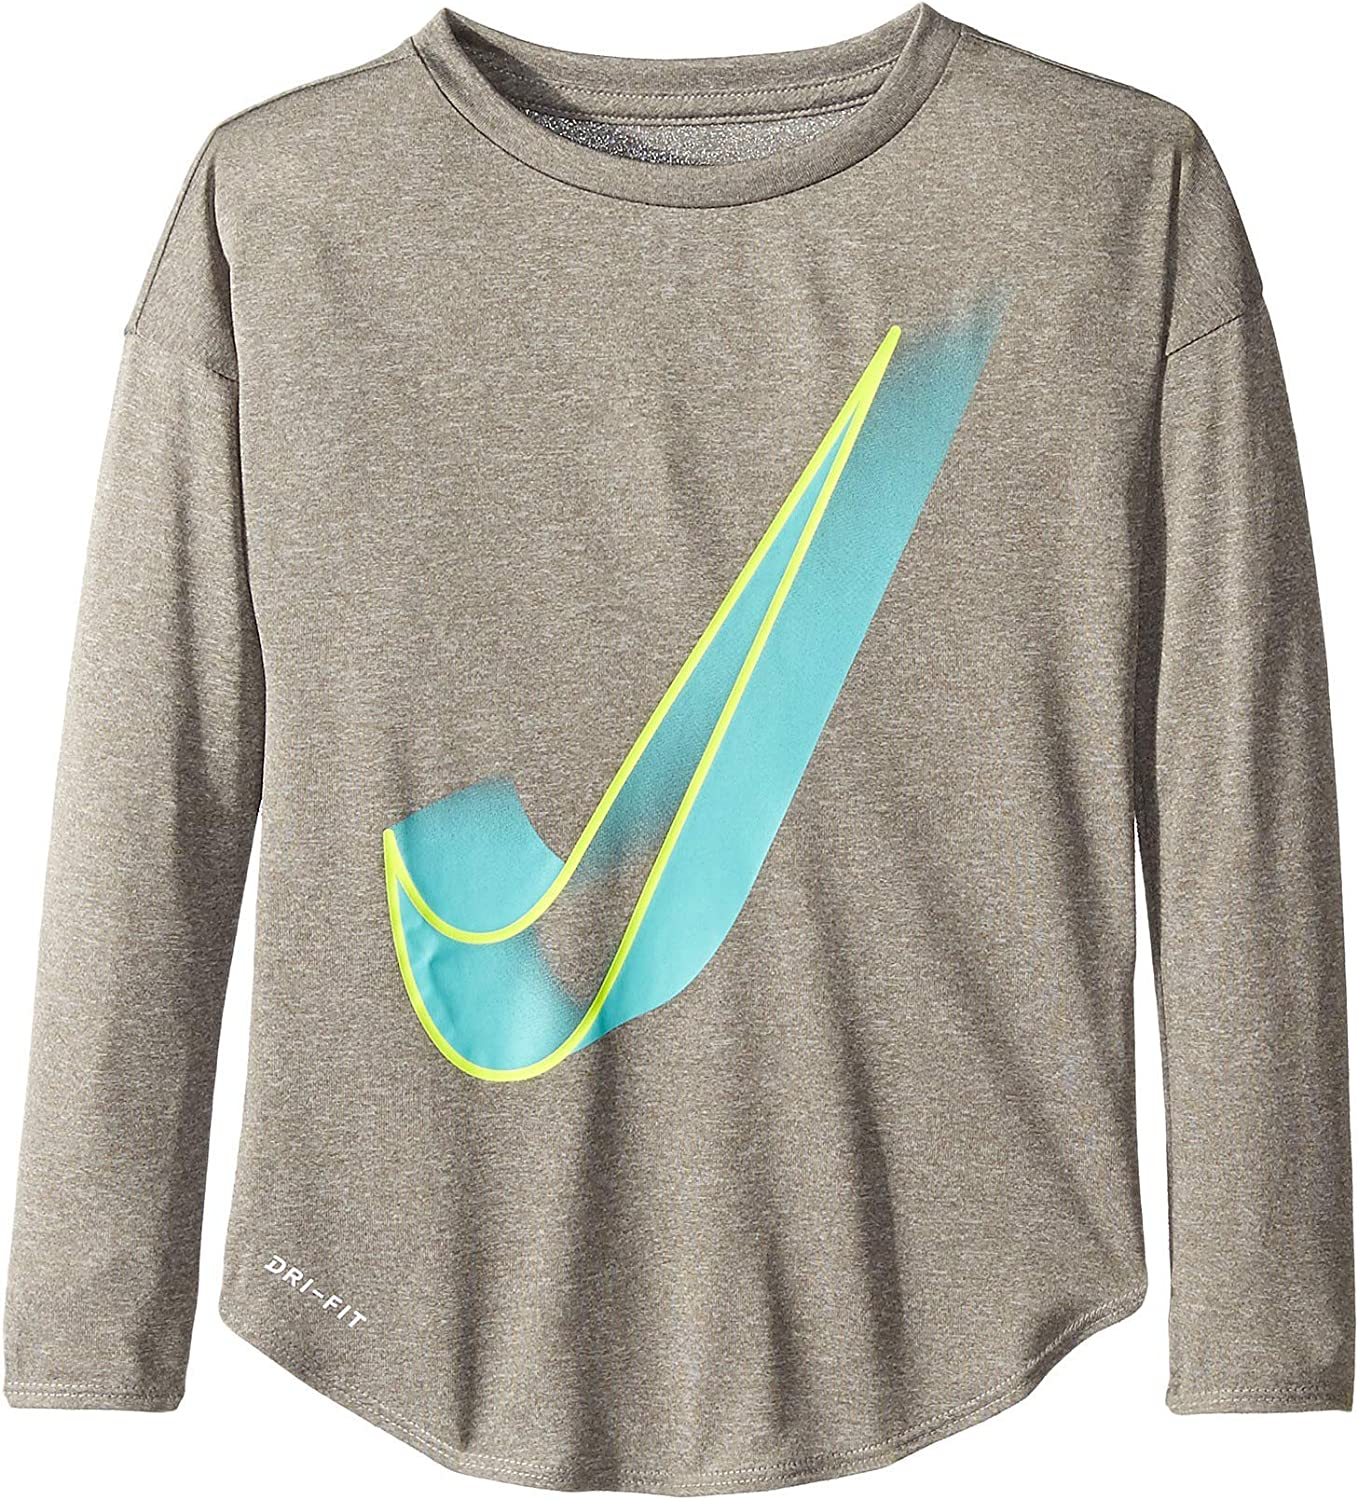 Little Kids Nike Kids Girls Interstellar Swoosh Long Sleeve Tee